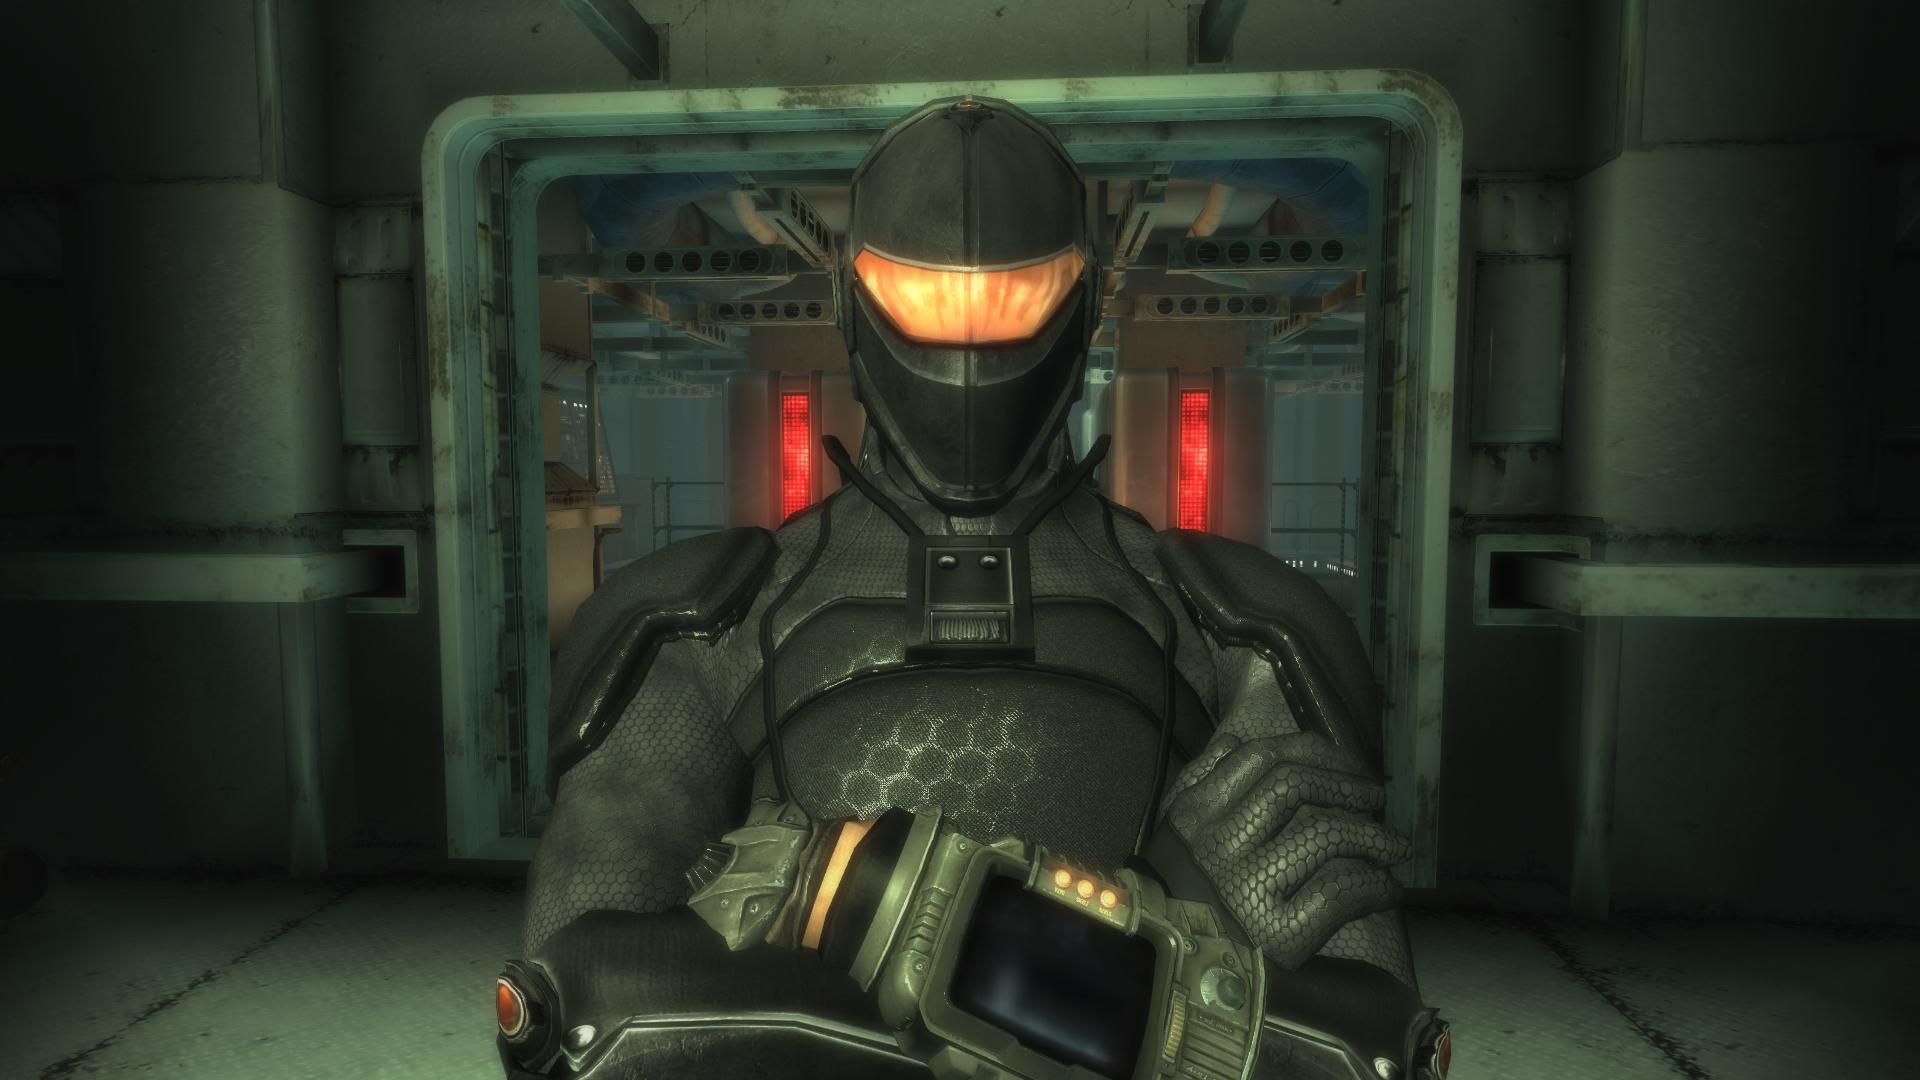 Eidospsogos The Chinese Stealth Armor Earned Upon Completing Operation Anchorage DLC Is Definitely My Favorite In Game